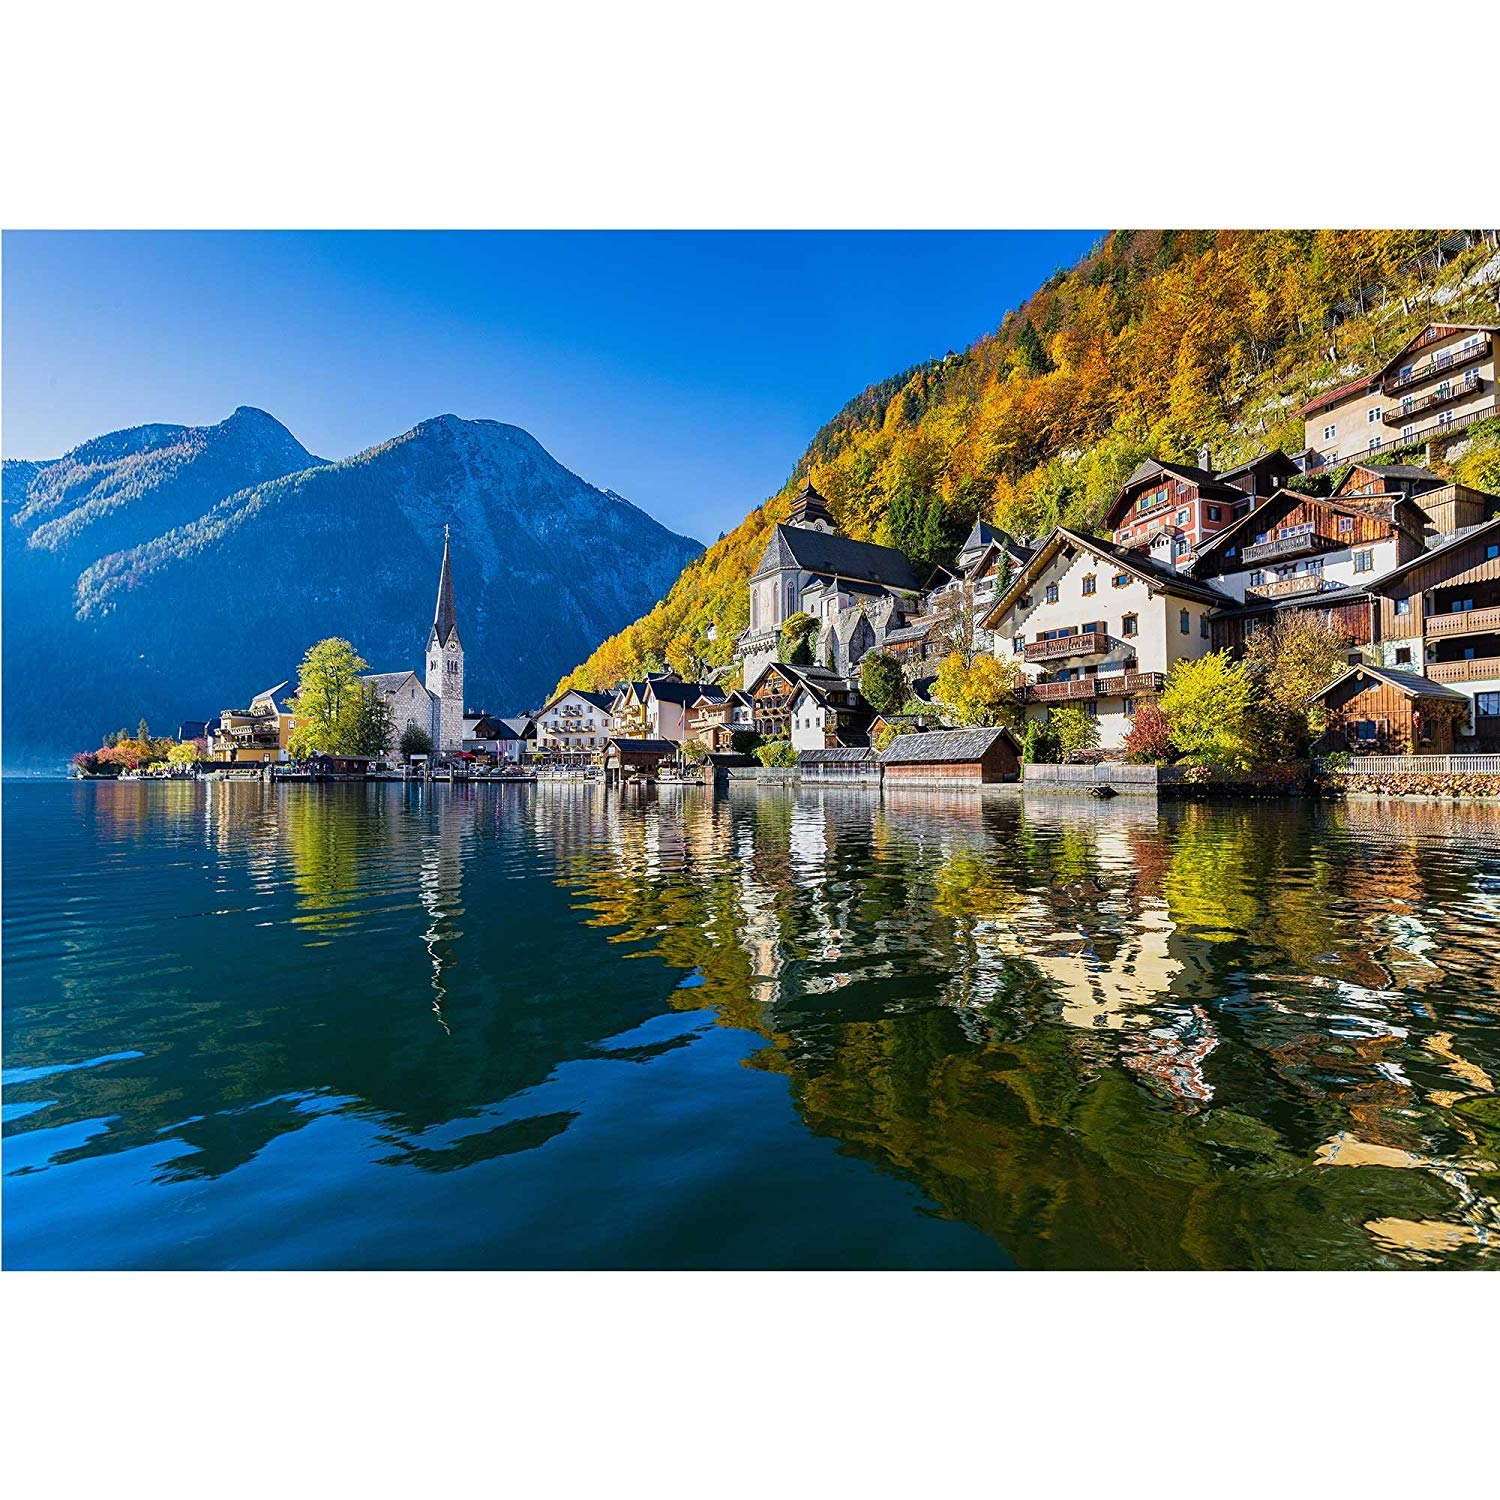 LanimioLOX Scenic Picture-Postcard View of Famous Hallstatt Mountain Village - Removable Wall Mural | Self-Adhesive Large Wallpaper